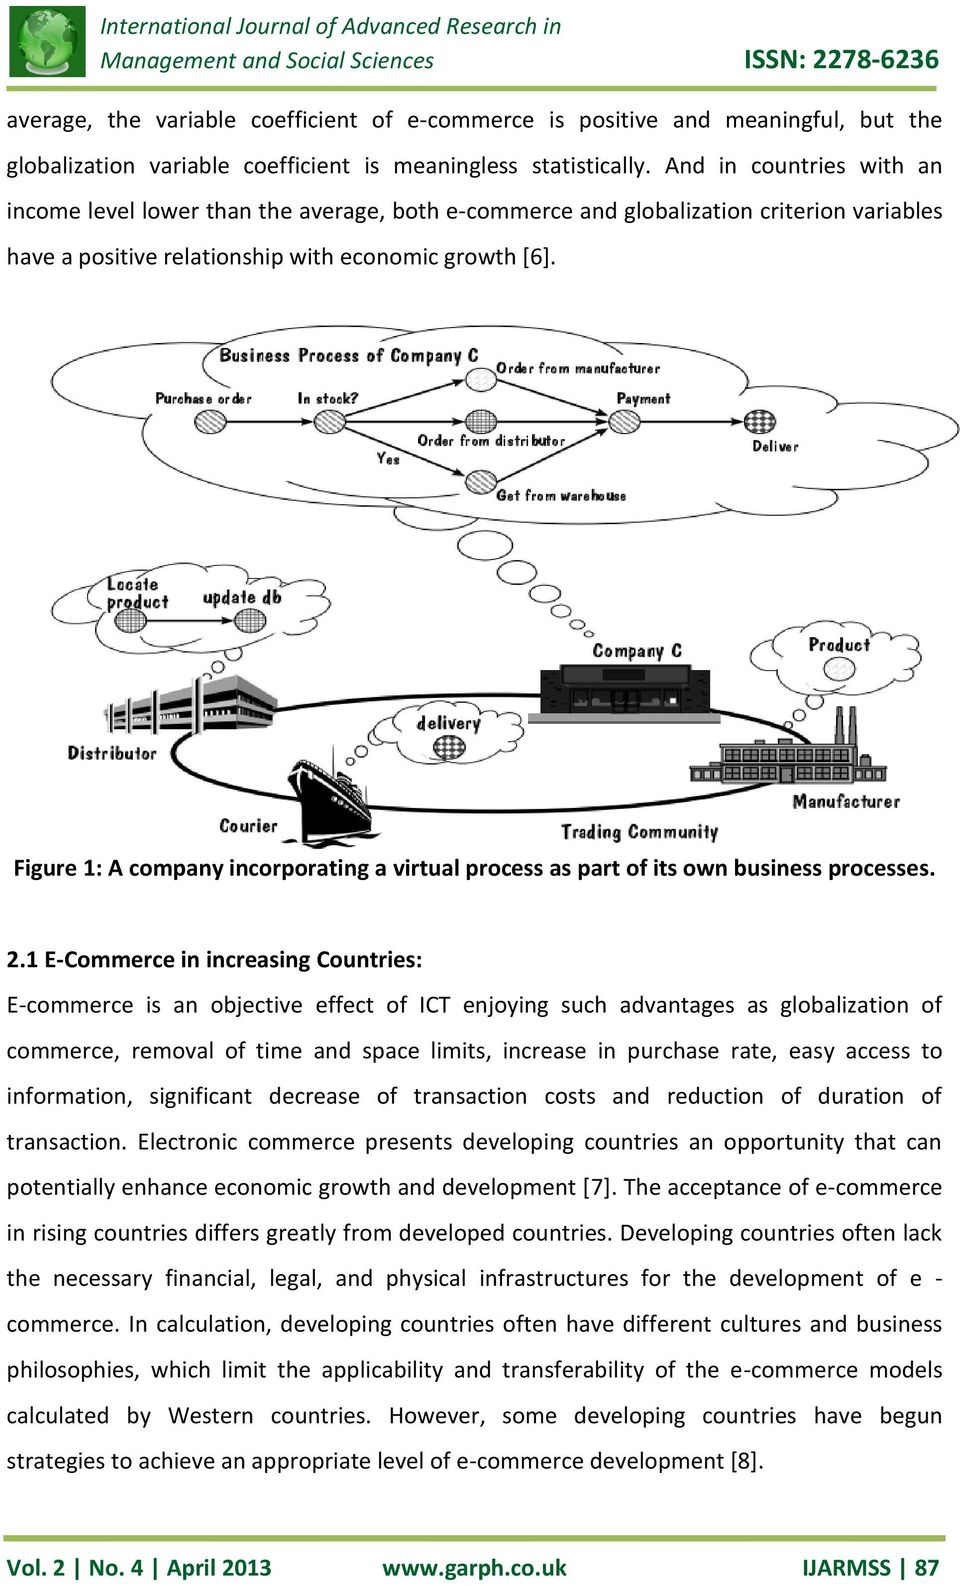 Figure 1: A company incorporating a virtual process as part of its own business processes. 2.